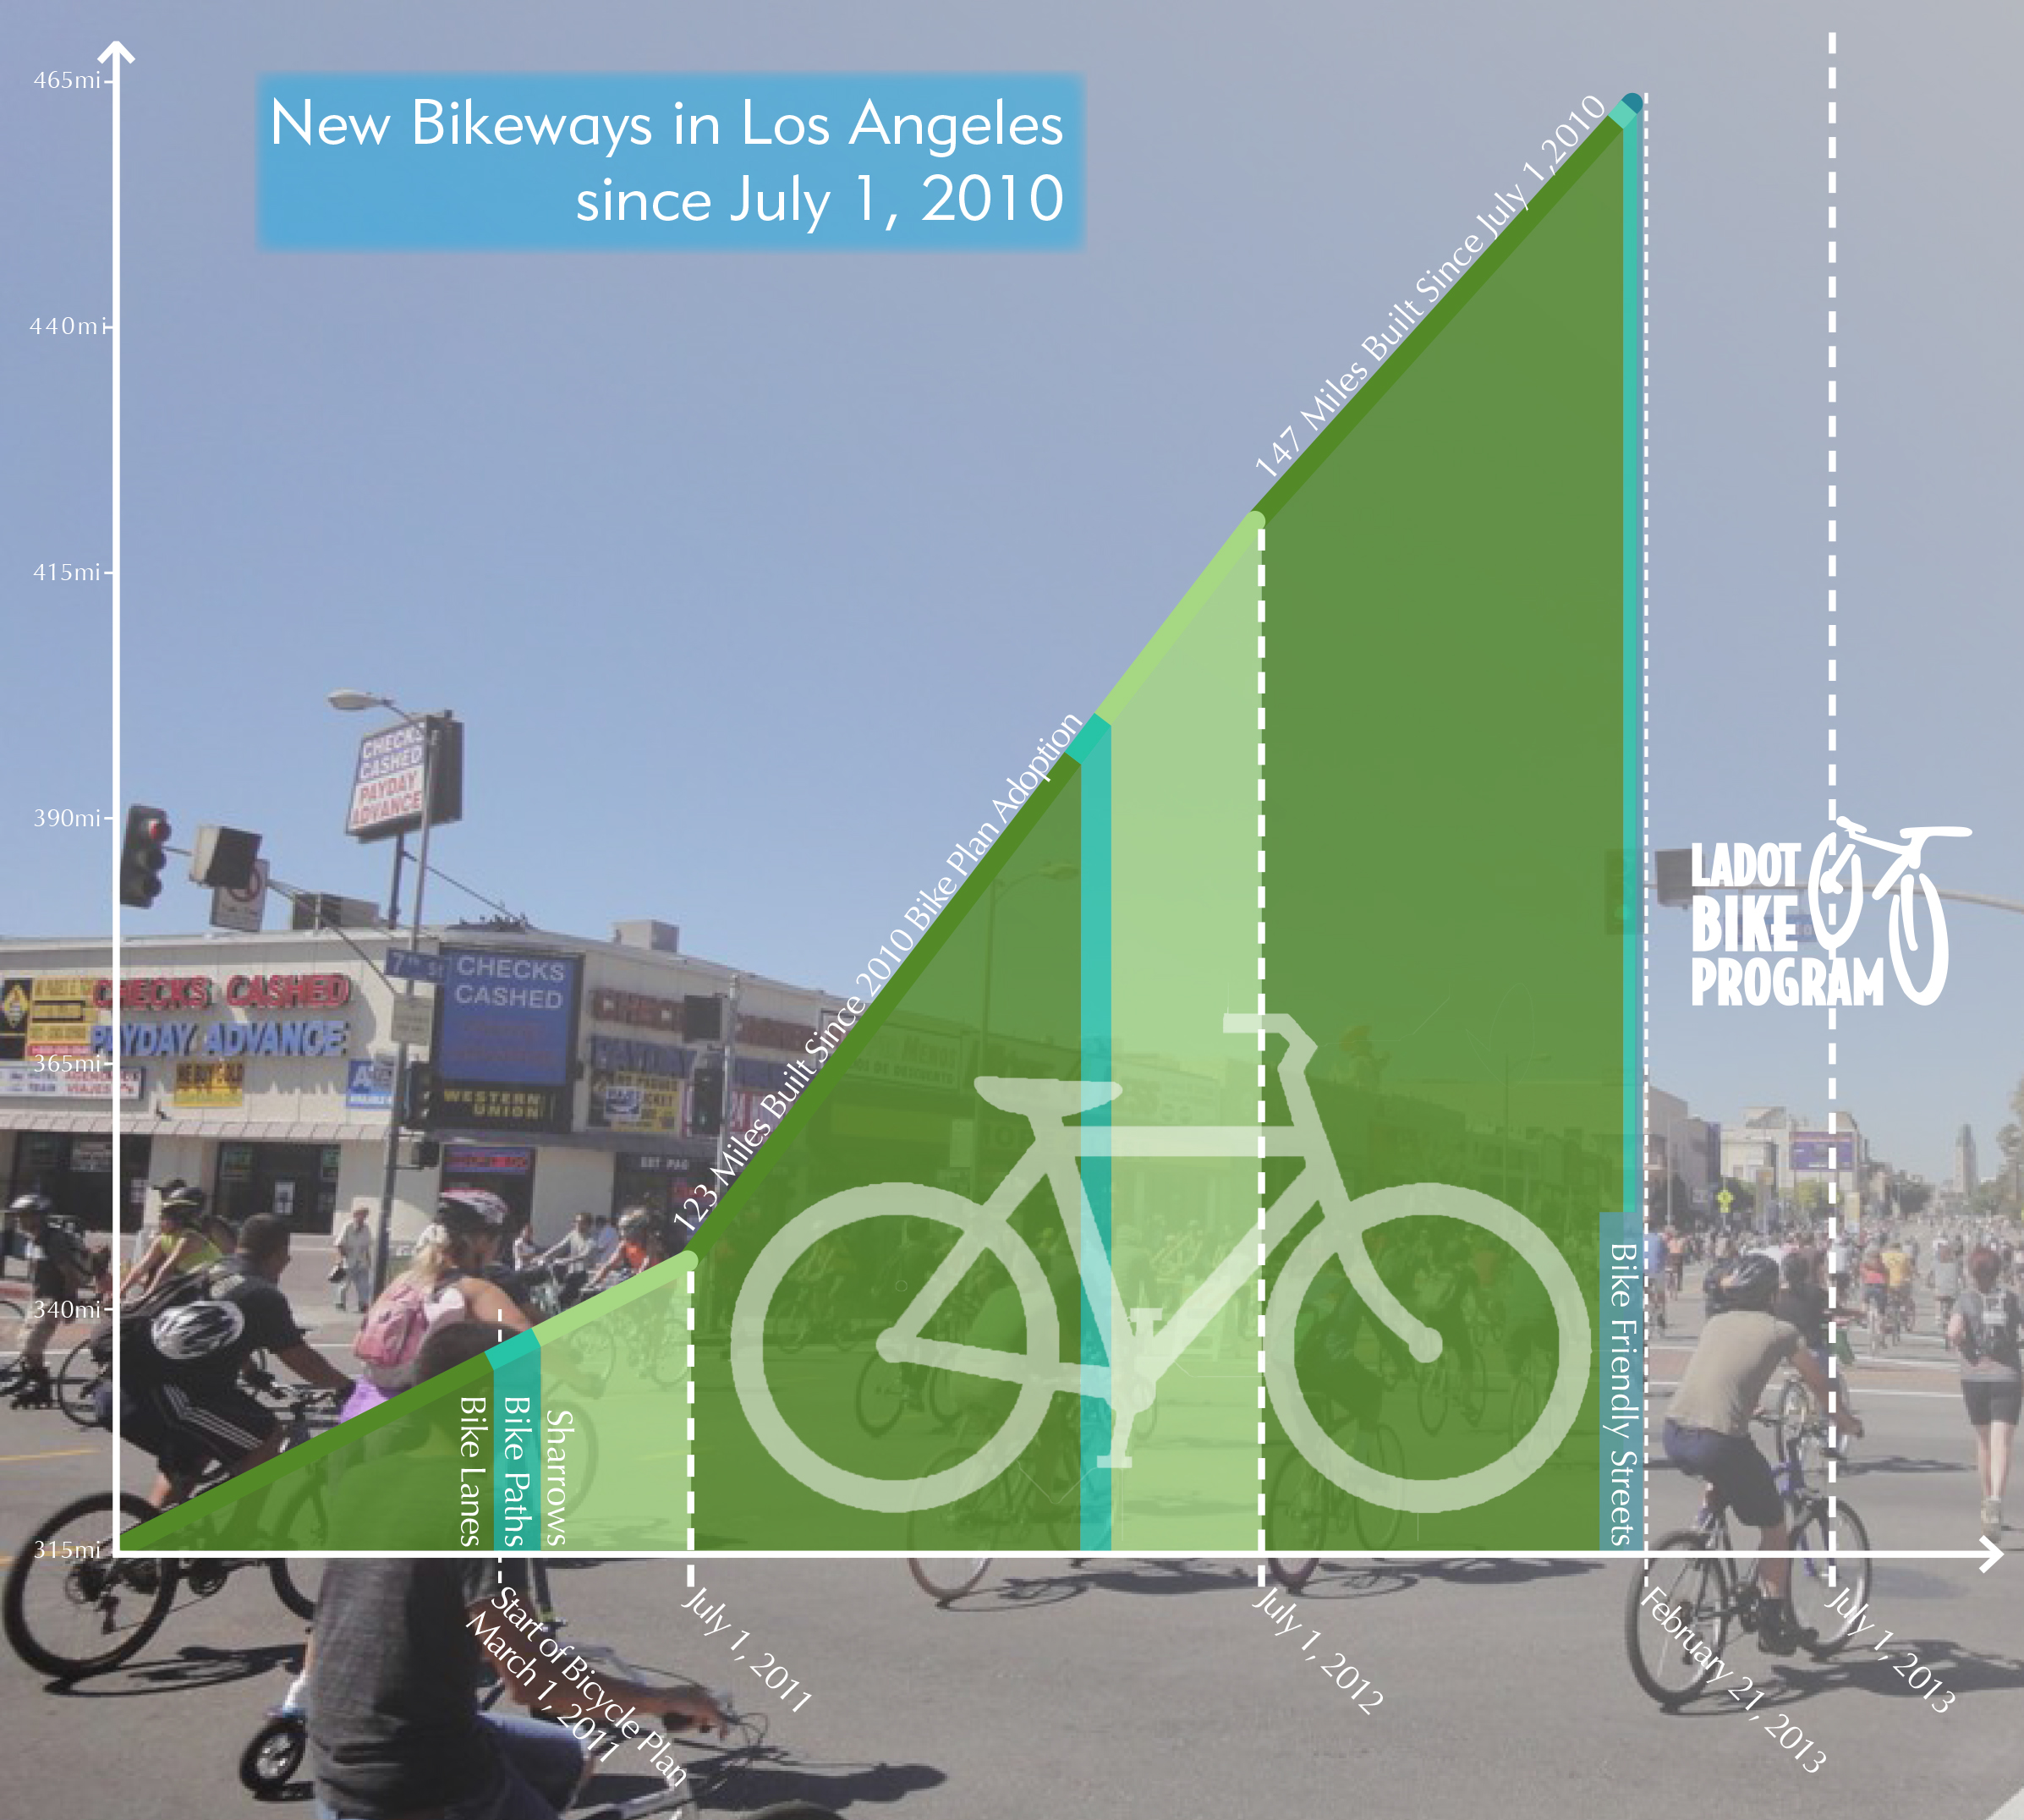 123 Miles Of Bikeways Installed Since The Adoption Of The 2010